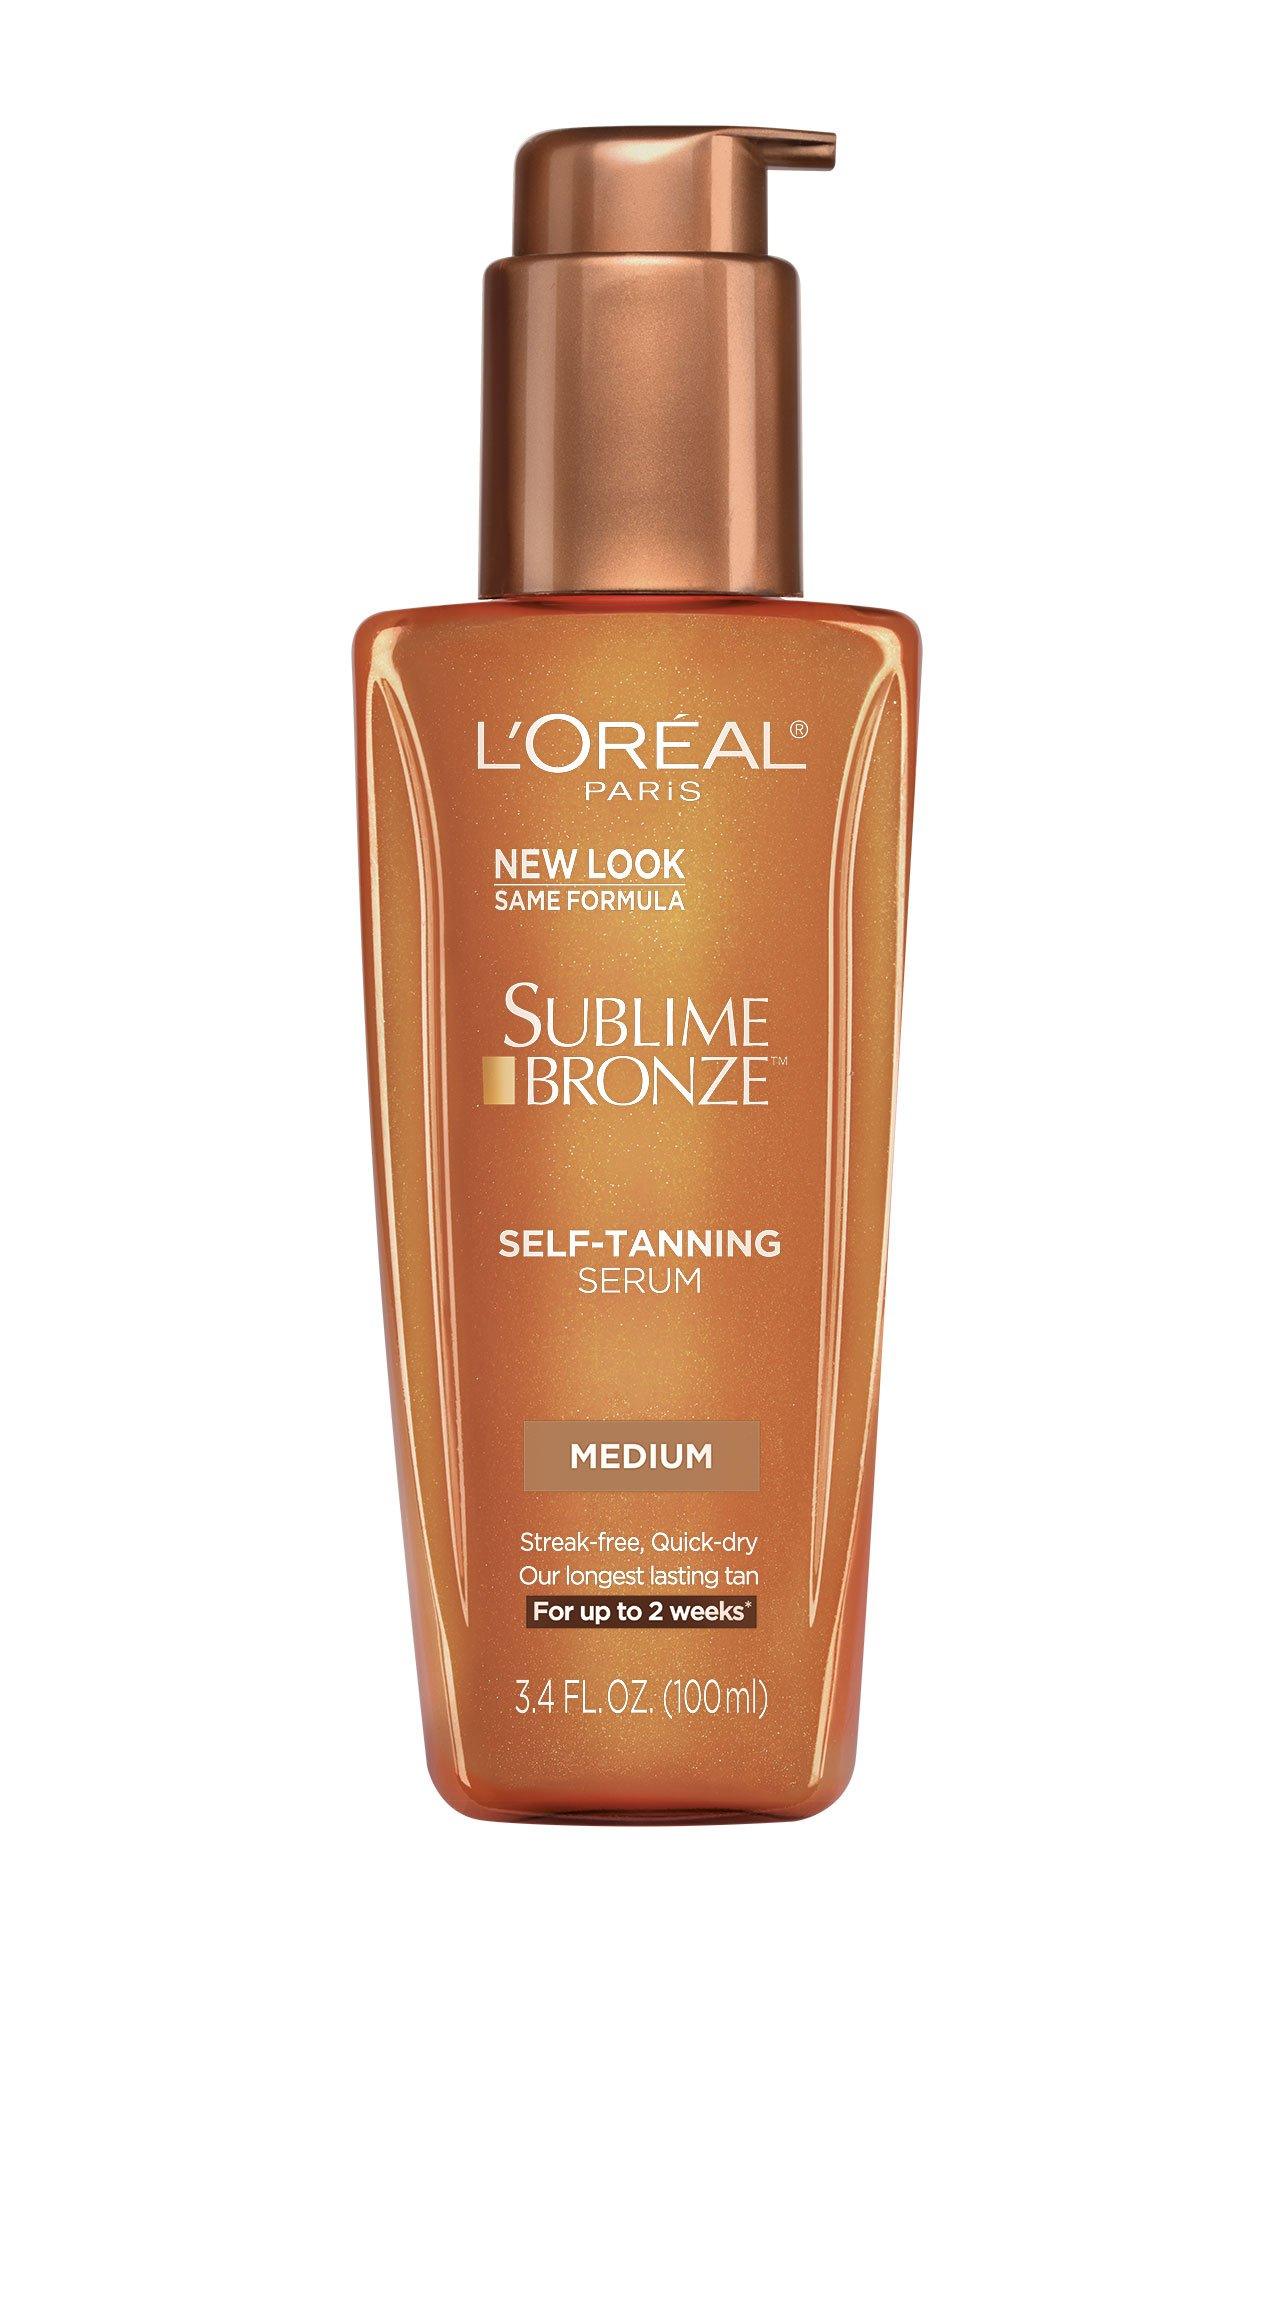 L'Oreal Paris Sublime Bronze Self-Tanning Serum, Medium Natural Tan, 3.4 fl. oz.